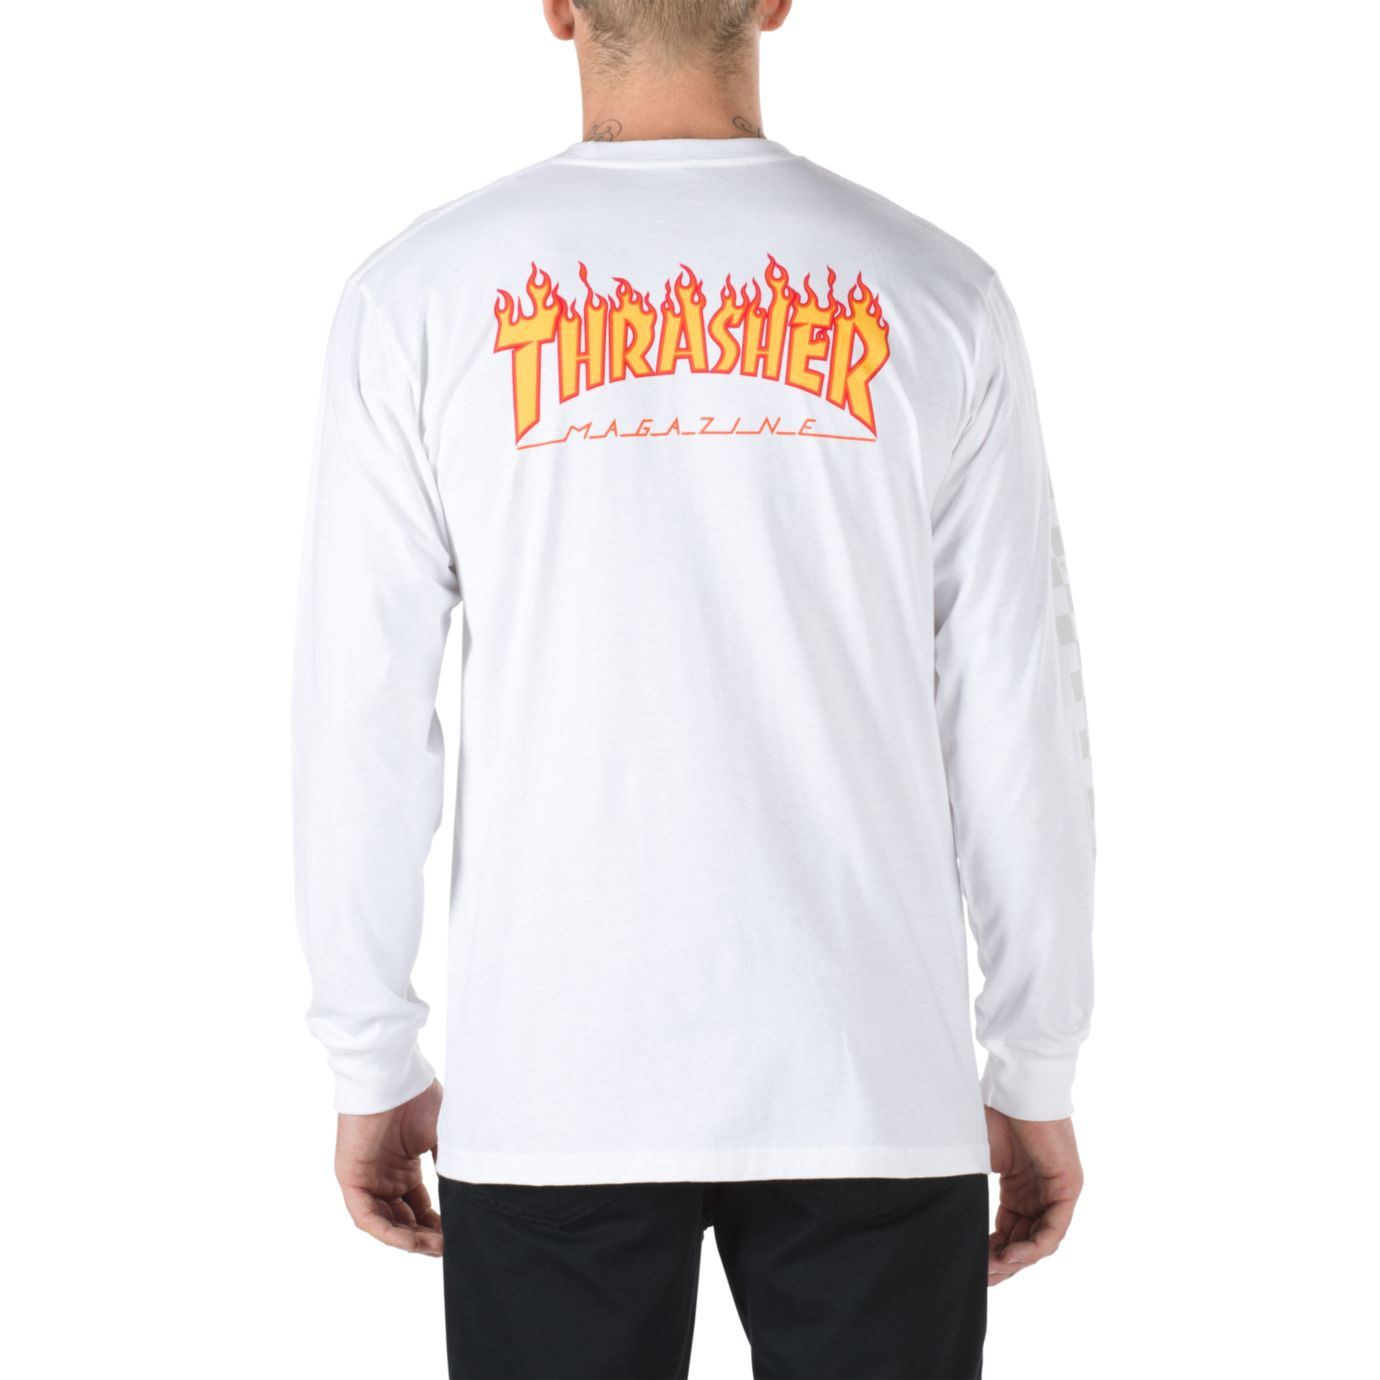 188a66df2d Vans Commemorates Thrasher Magazine s Iconic Flame Motif